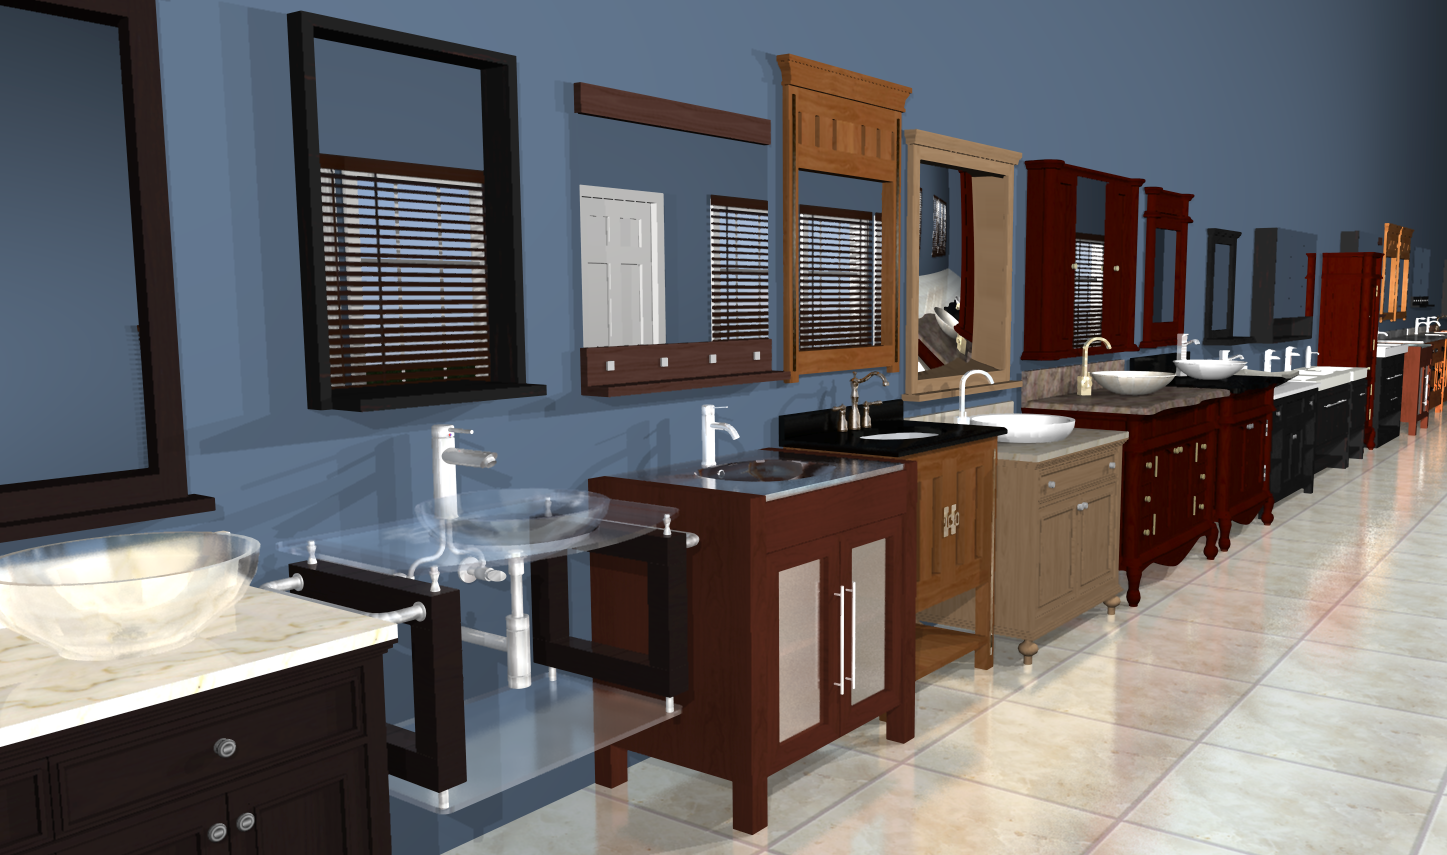 Punch Bathroom Collection Content Pack Punch Software Official Site Simple Bathroom Renovation Home Design Software Kitchen Design